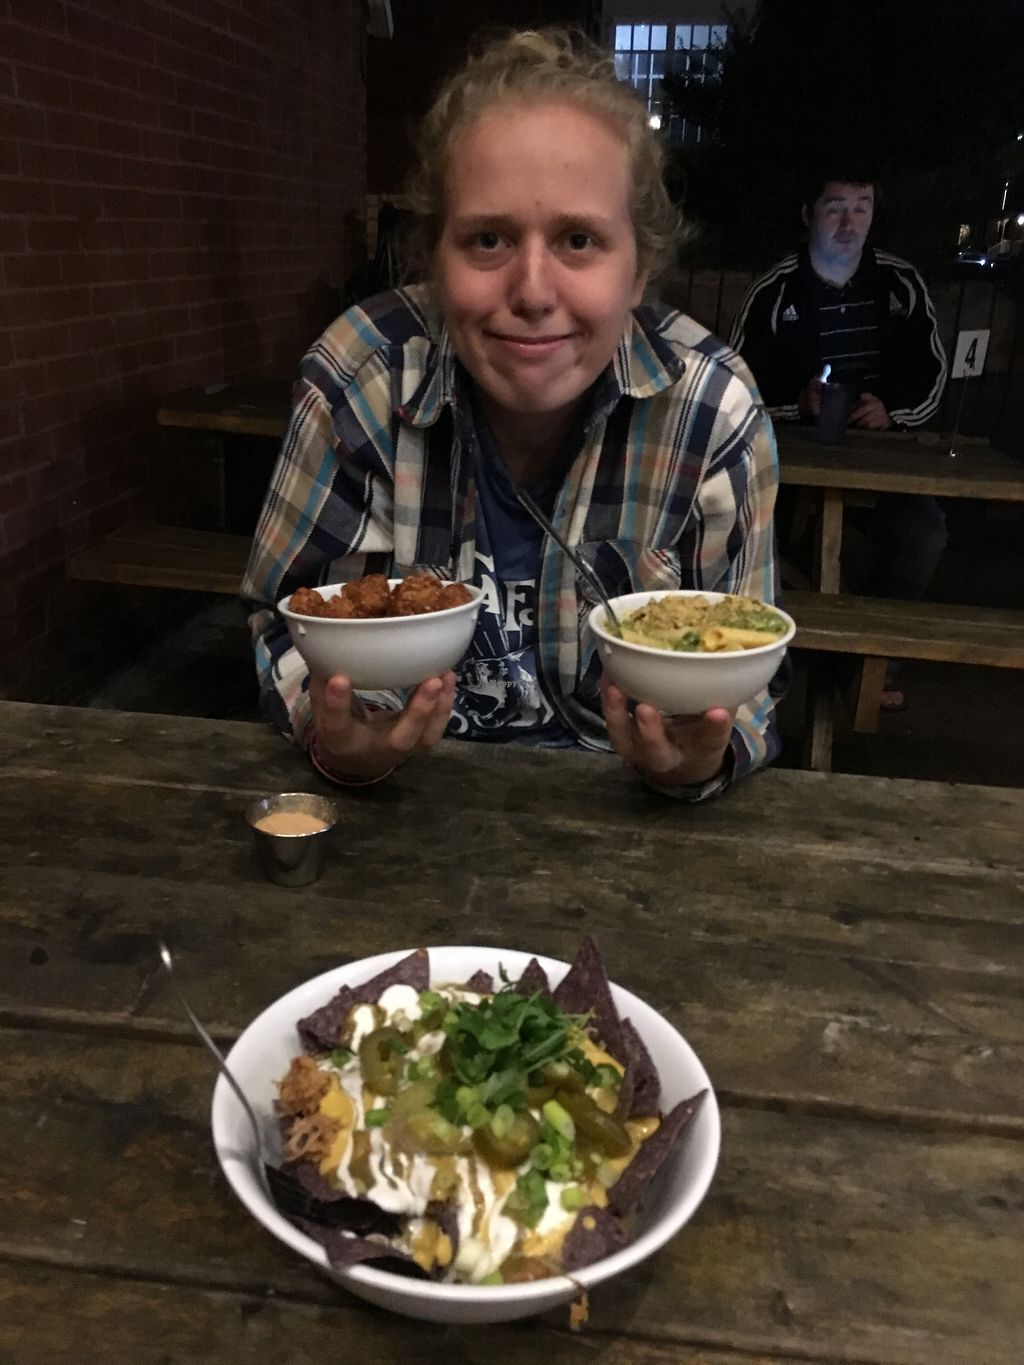 """Photo of Lulu's Local Eatery  by <a href=""""/members/profile/SkyFitzgerald"""">SkyFitzgerald</a> <br/>Loaded nachos, pesto mac and cheese and tater tots!  <br/> October 20, 2017  - <a href='/contact/abuse/image/40268/316947'>Report</a>"""